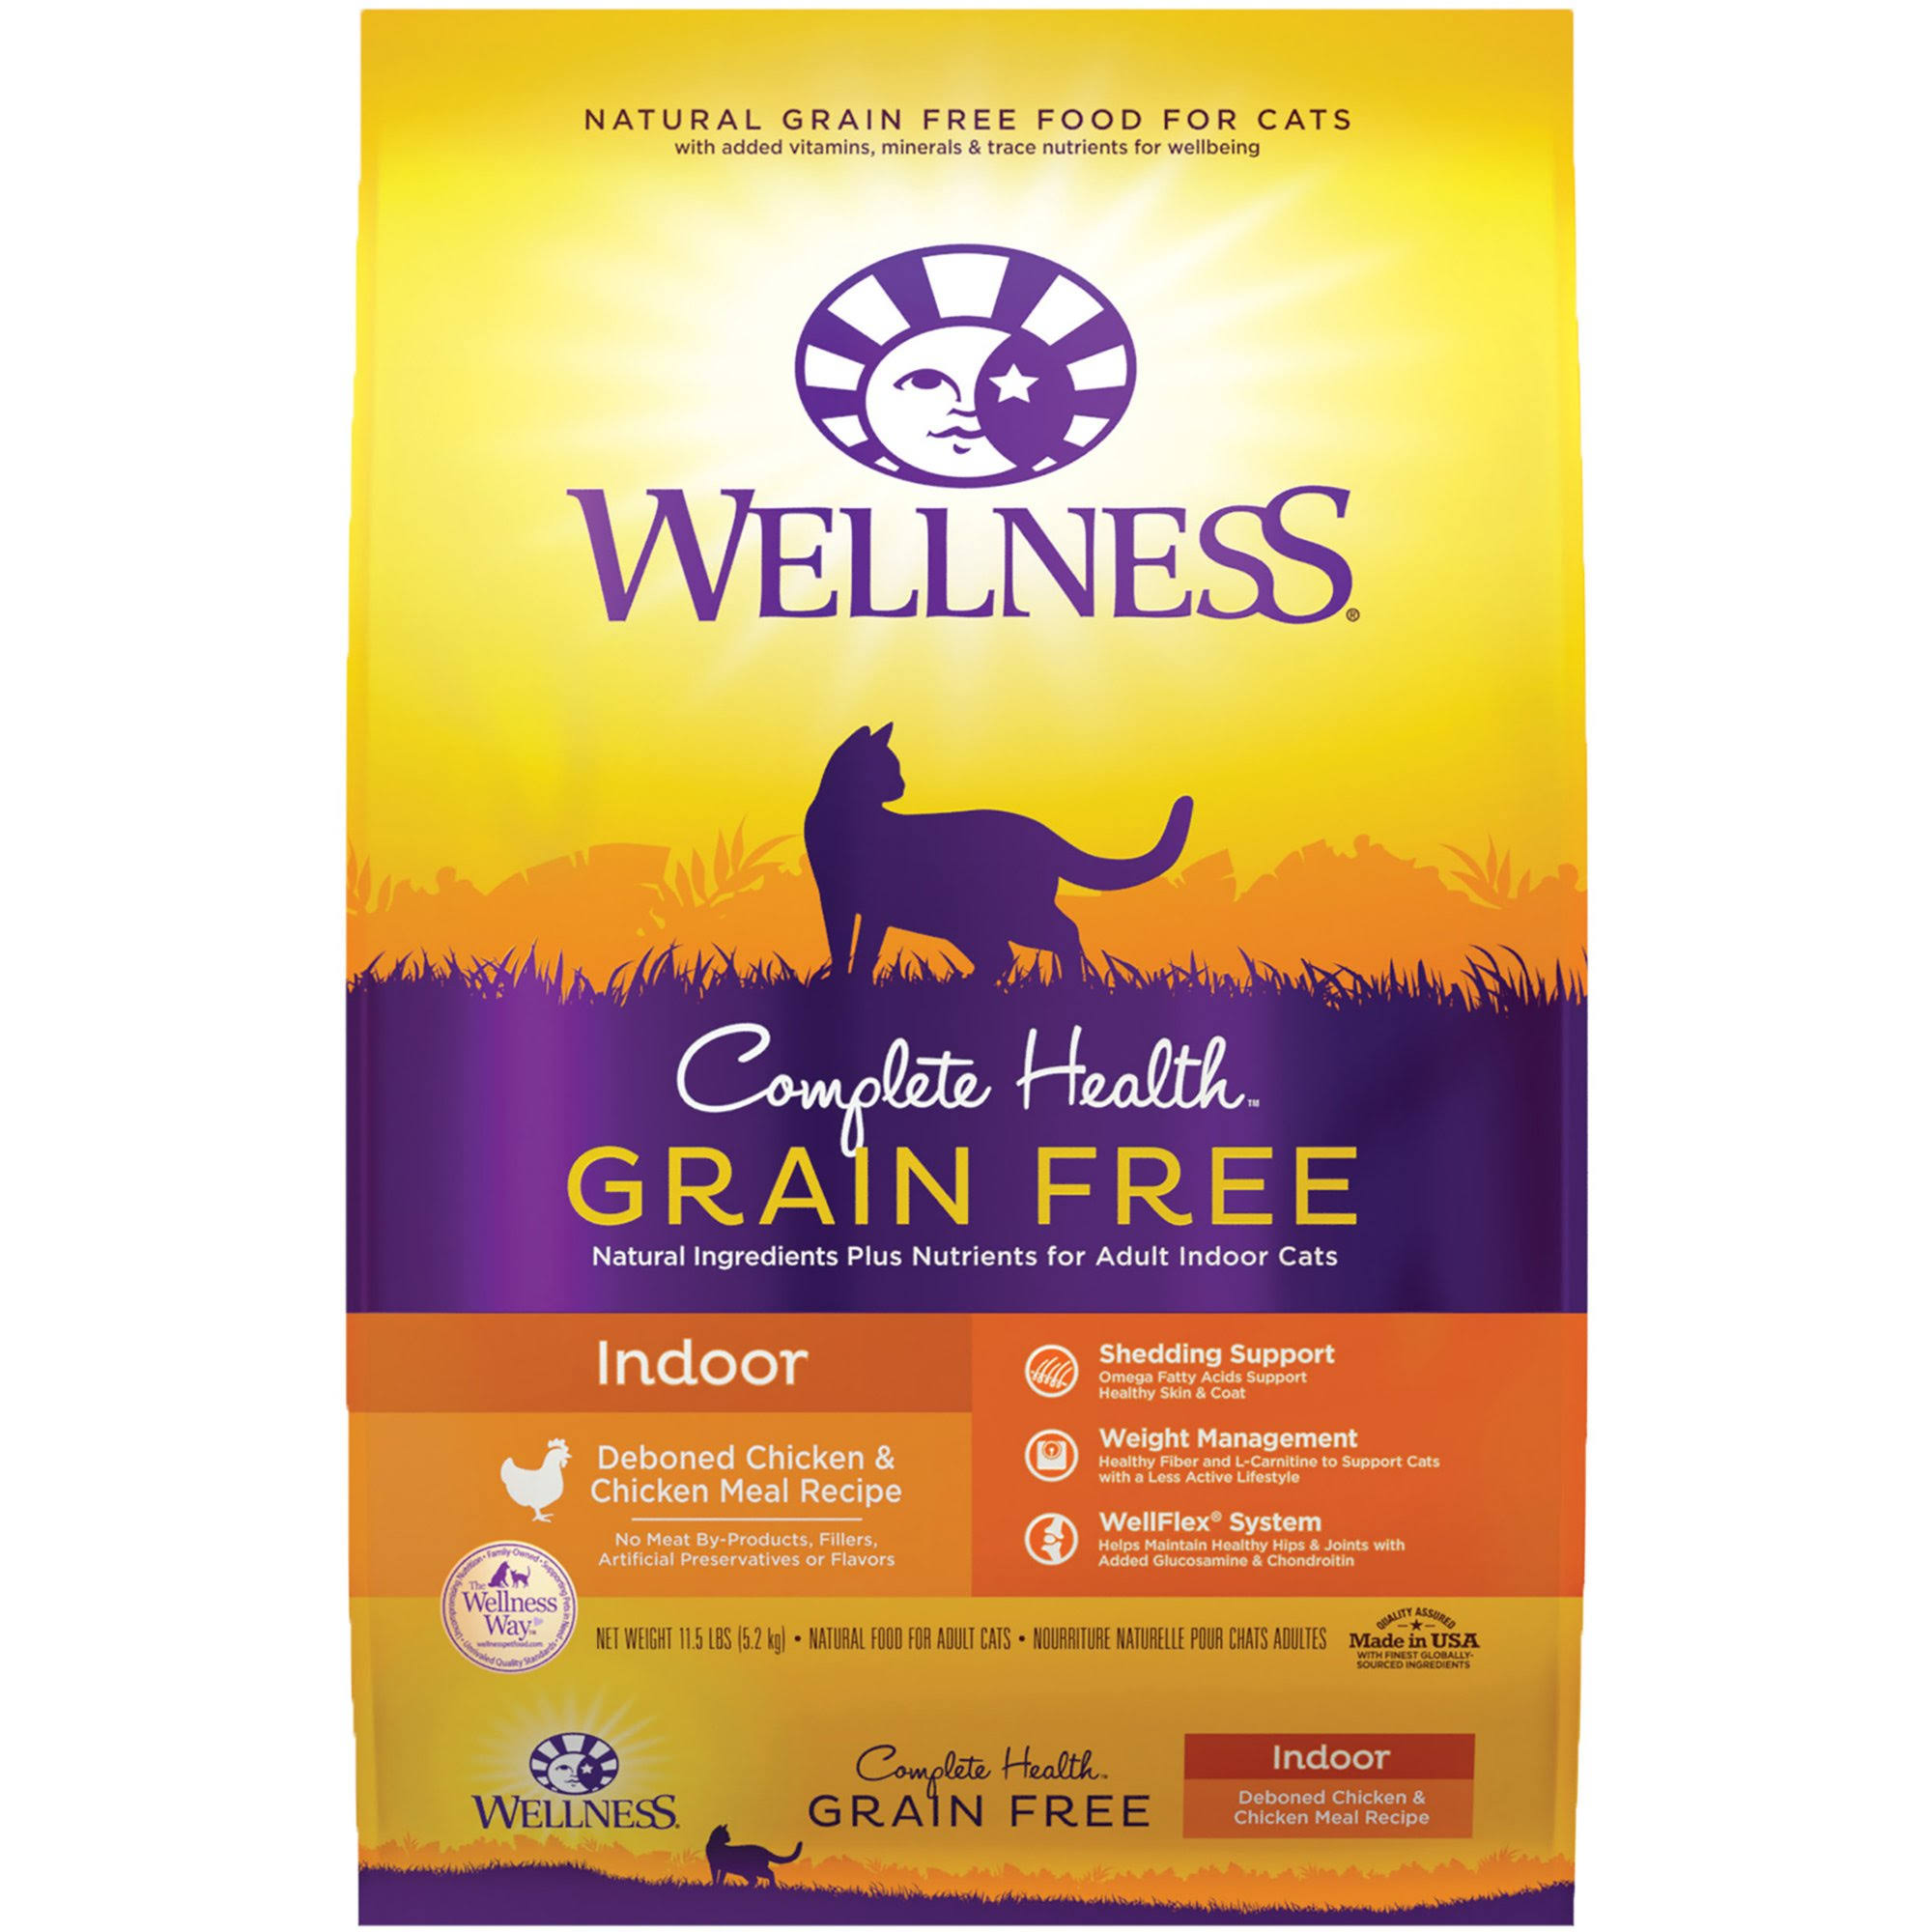 Wellness Complete Health Grain Free Natural Dry Cat Food - Indoor Chicken, 11.5-lbs